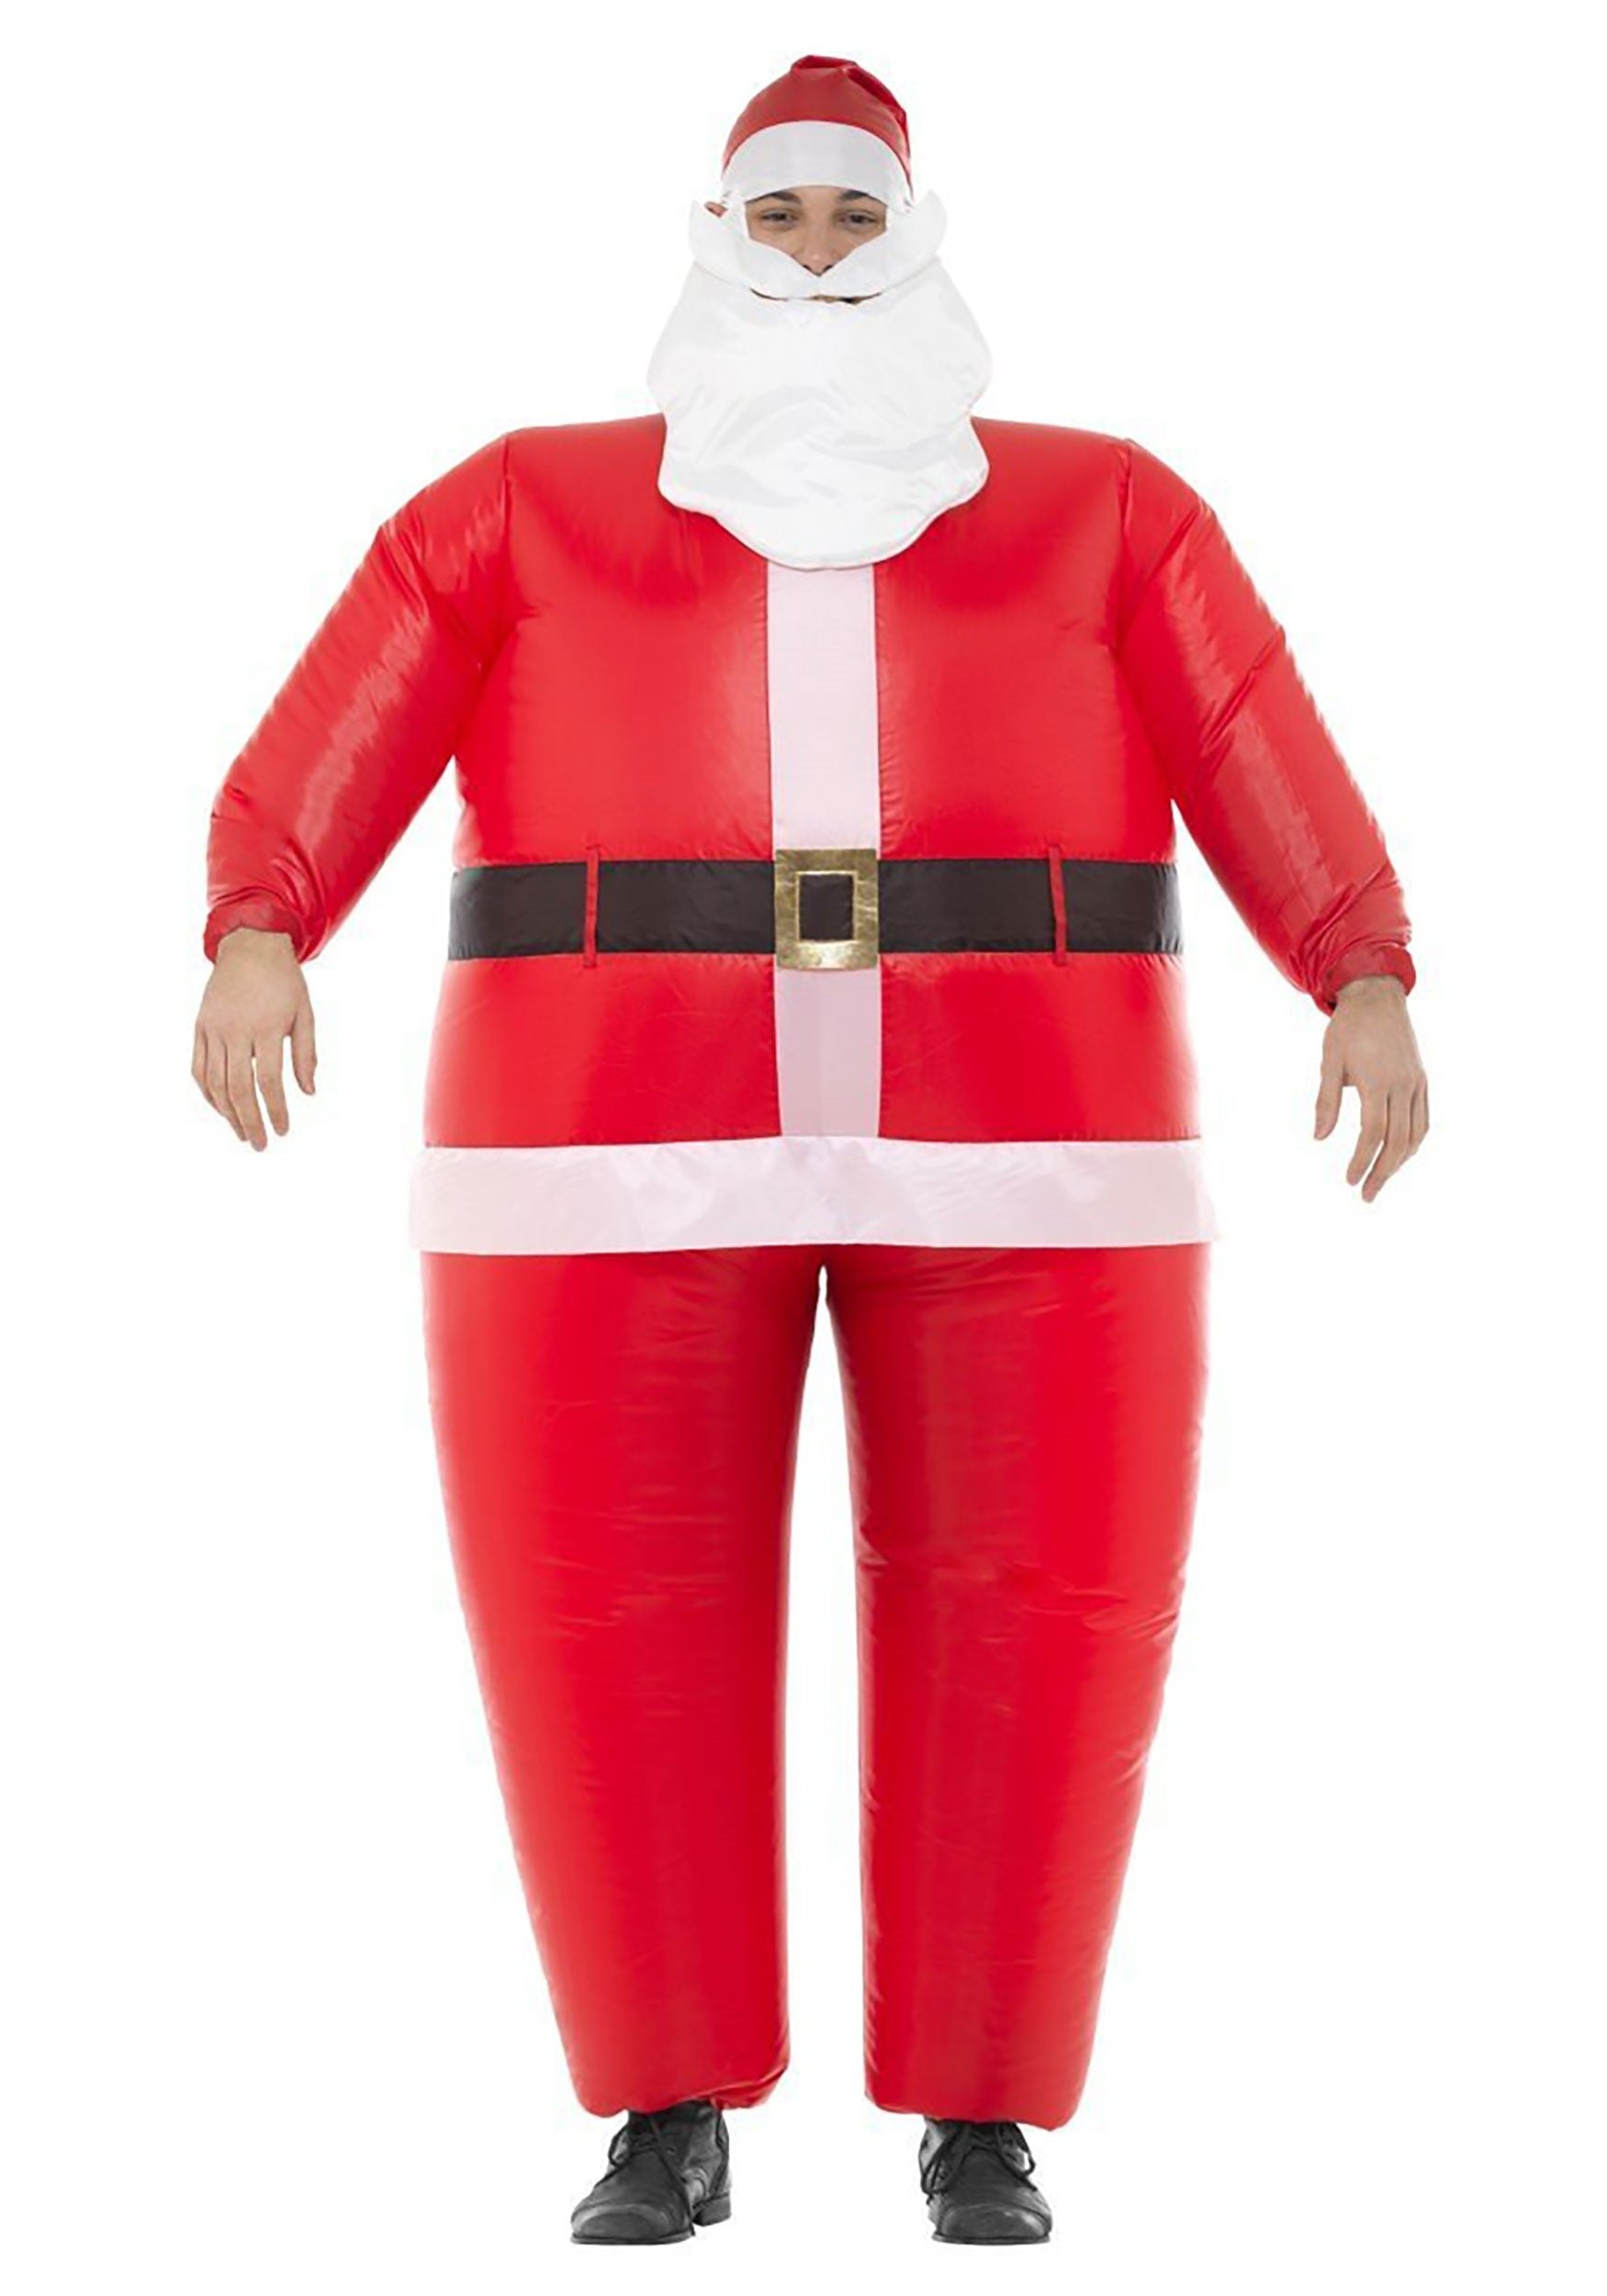 Inflatable Santa Suit Costume - Buy